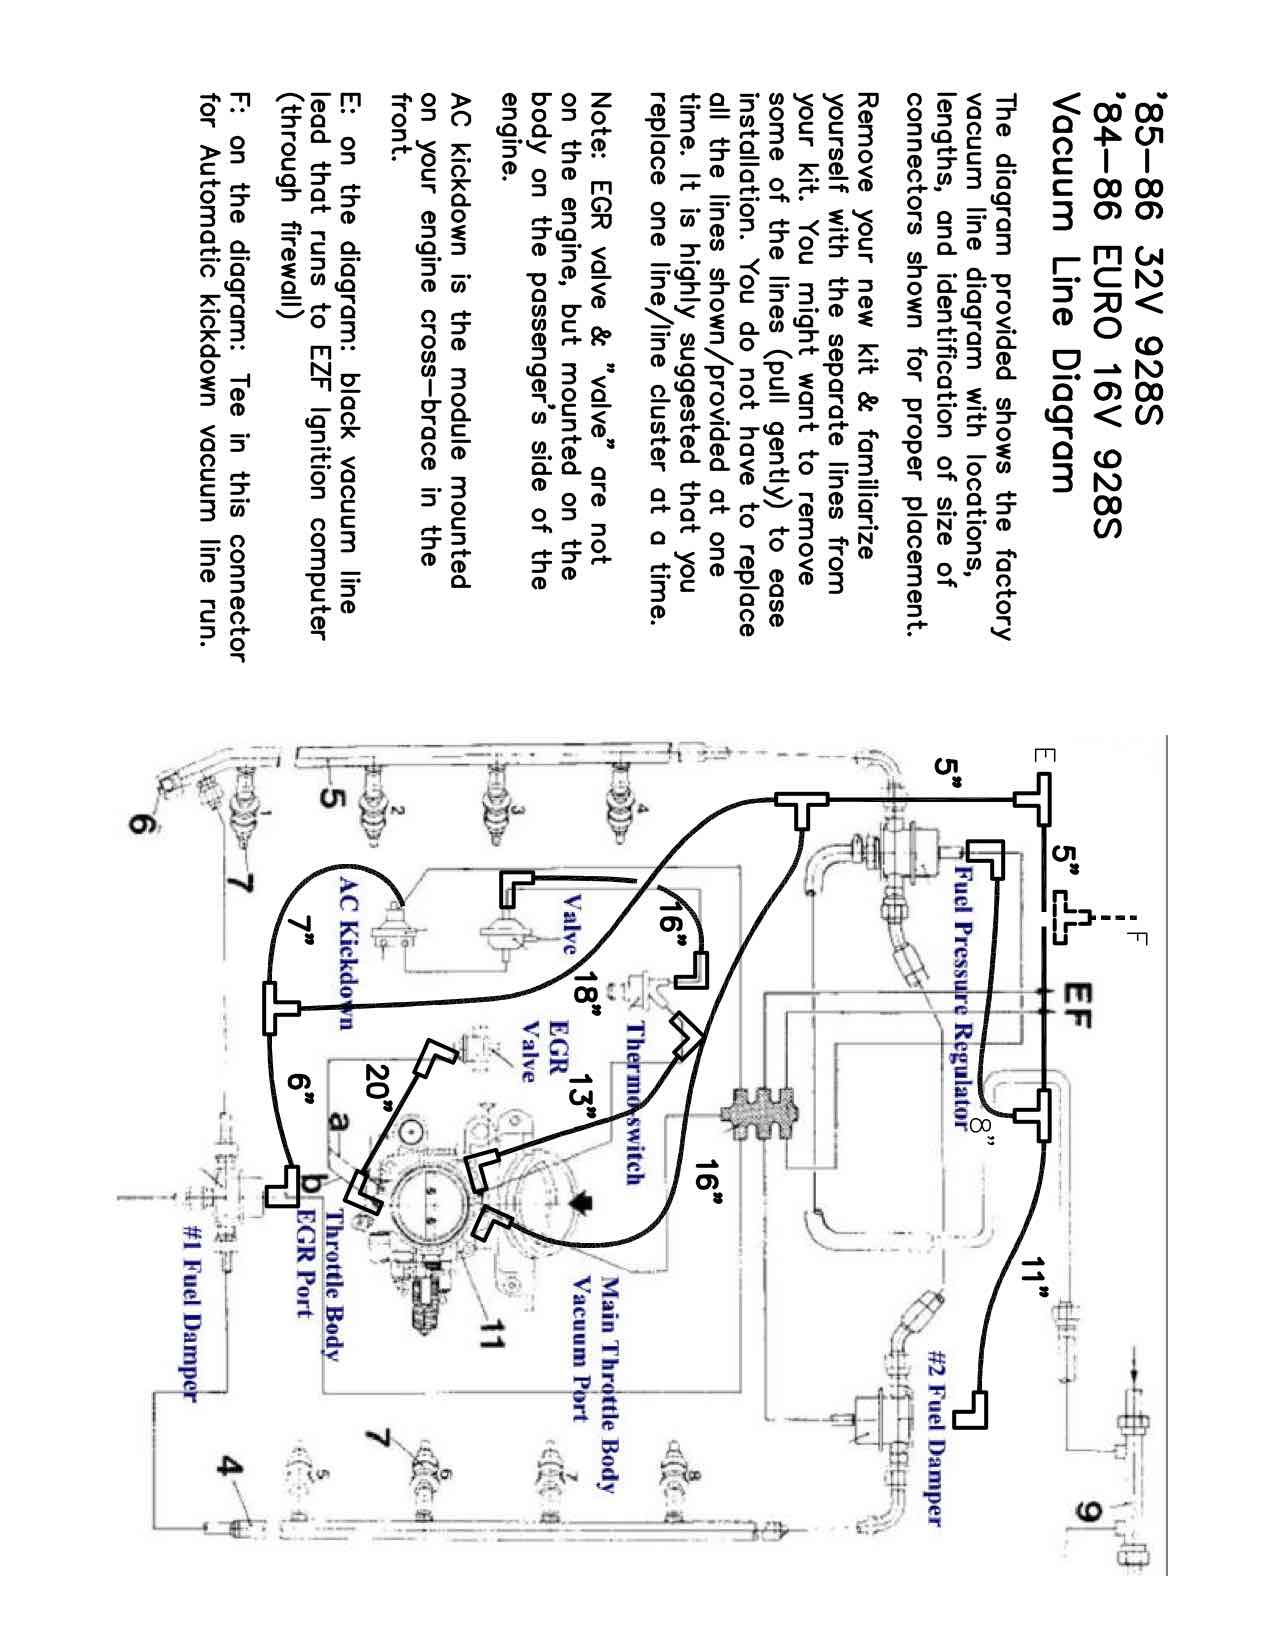 hight resolution of 1988 porsche 944 fuse box porsche auto fuse box diagram porsche 944 emblem